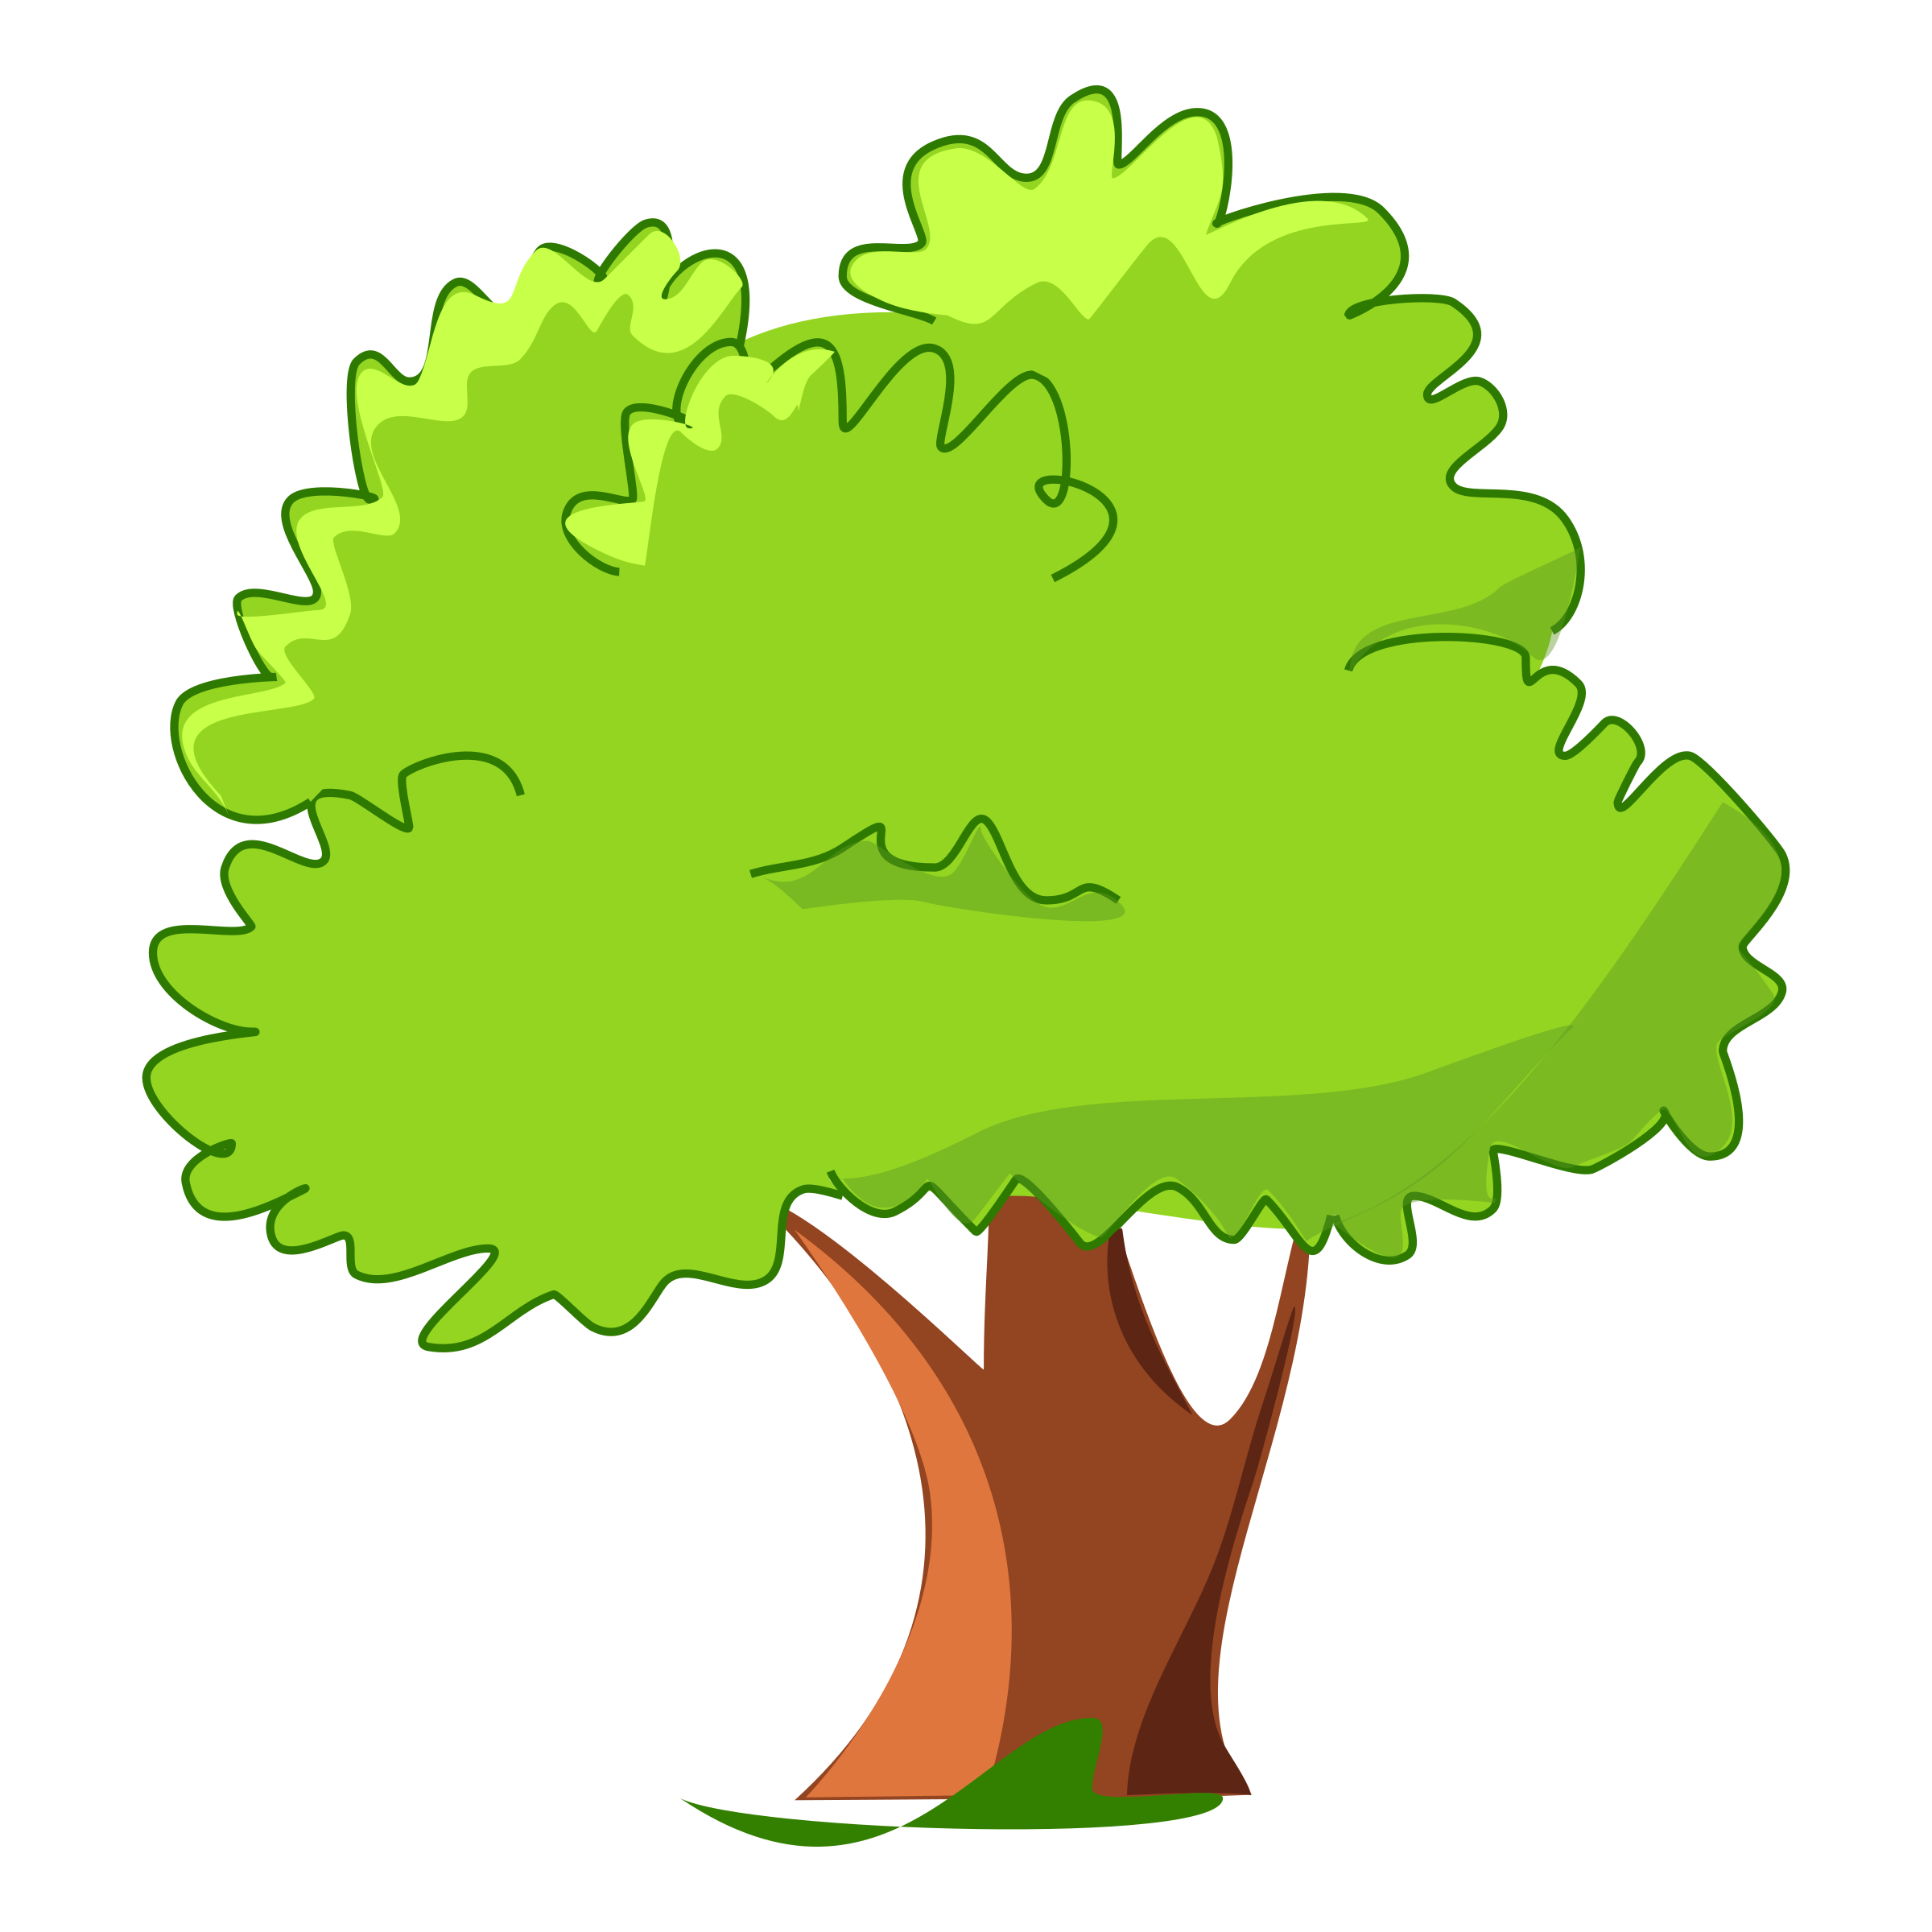 Mango tree clipart freeuse library Opportunities Cartoon Picture Of A Tree Branchy Icon Illustration ... freeuse library